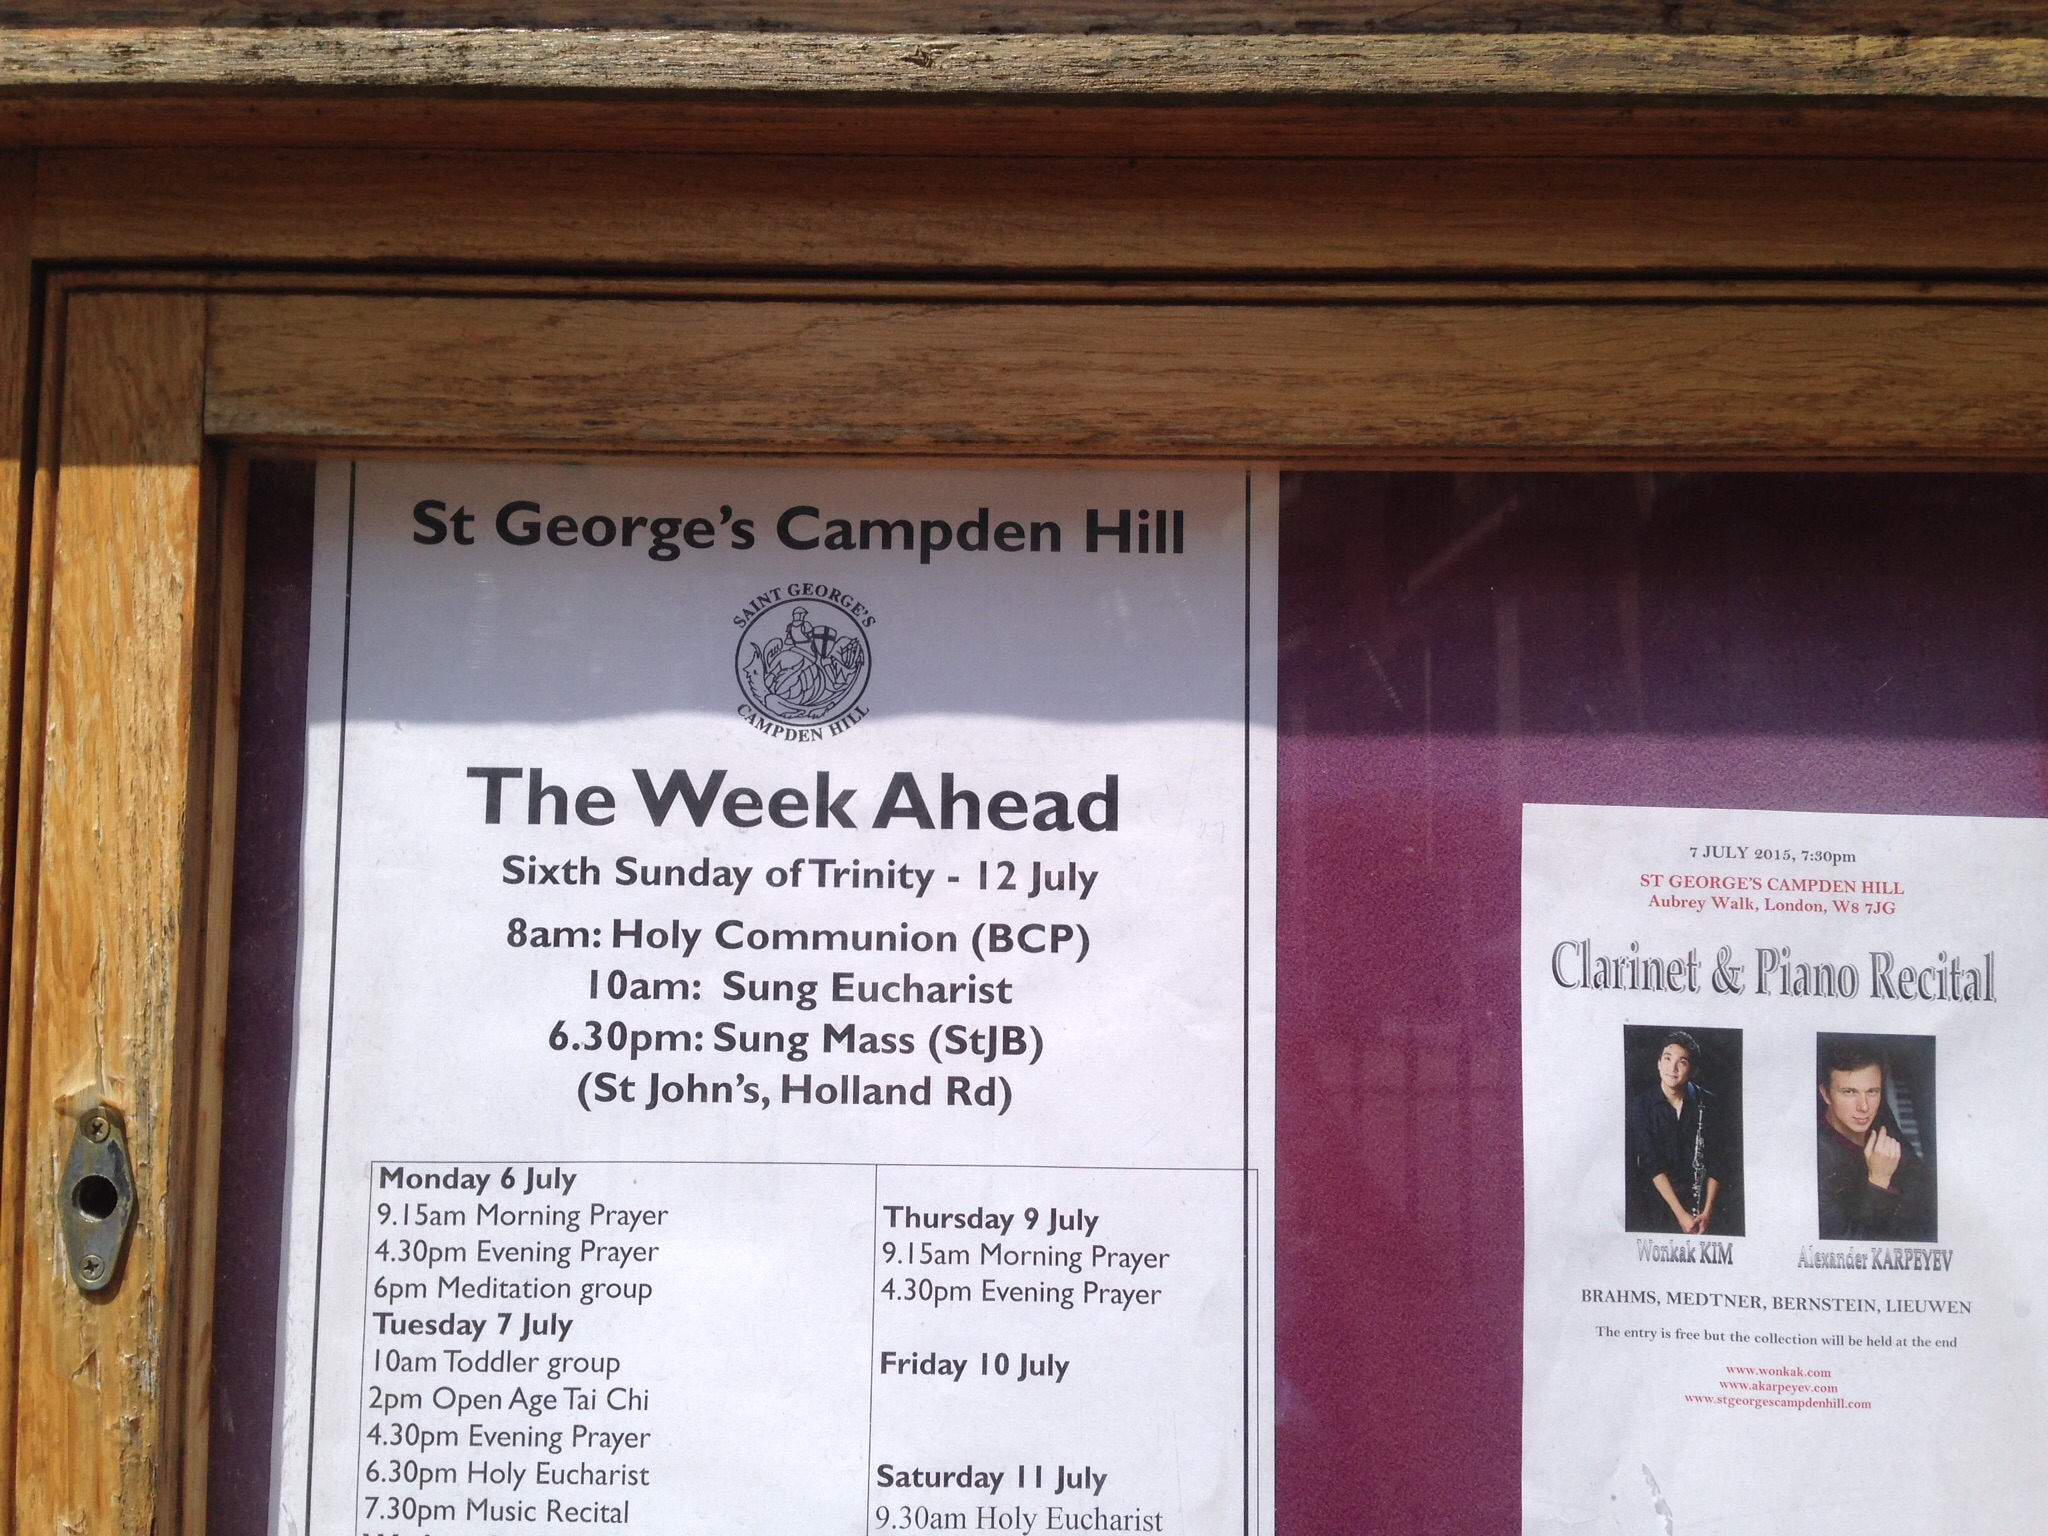 Recital at St. George's Campden Hill